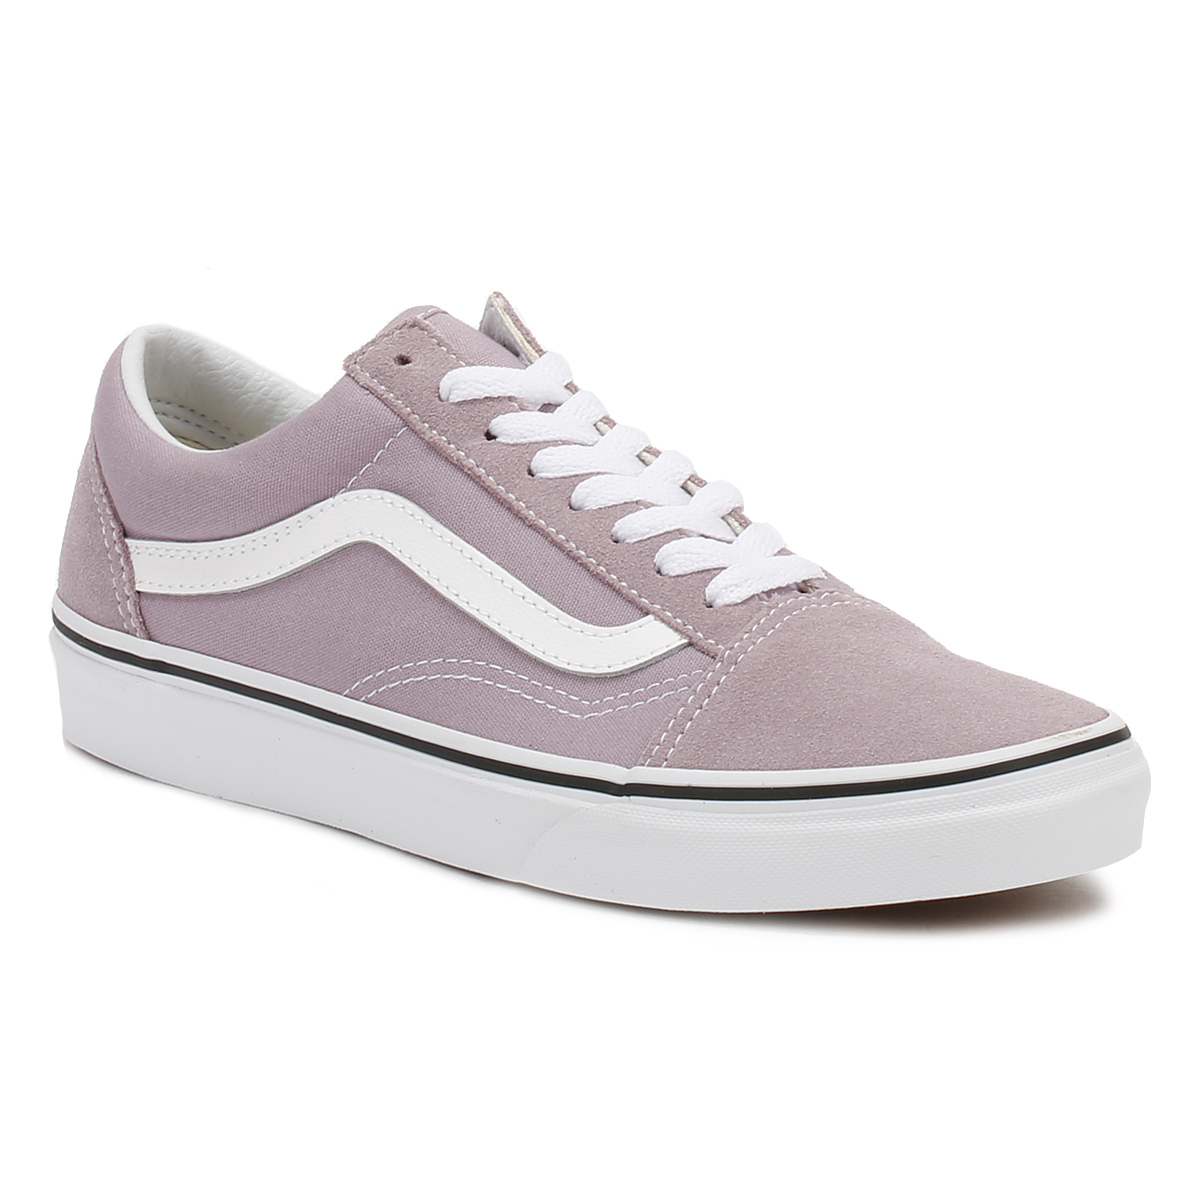 Vans Womens Lavender Old Skool Suede Trainers 567e50e8a